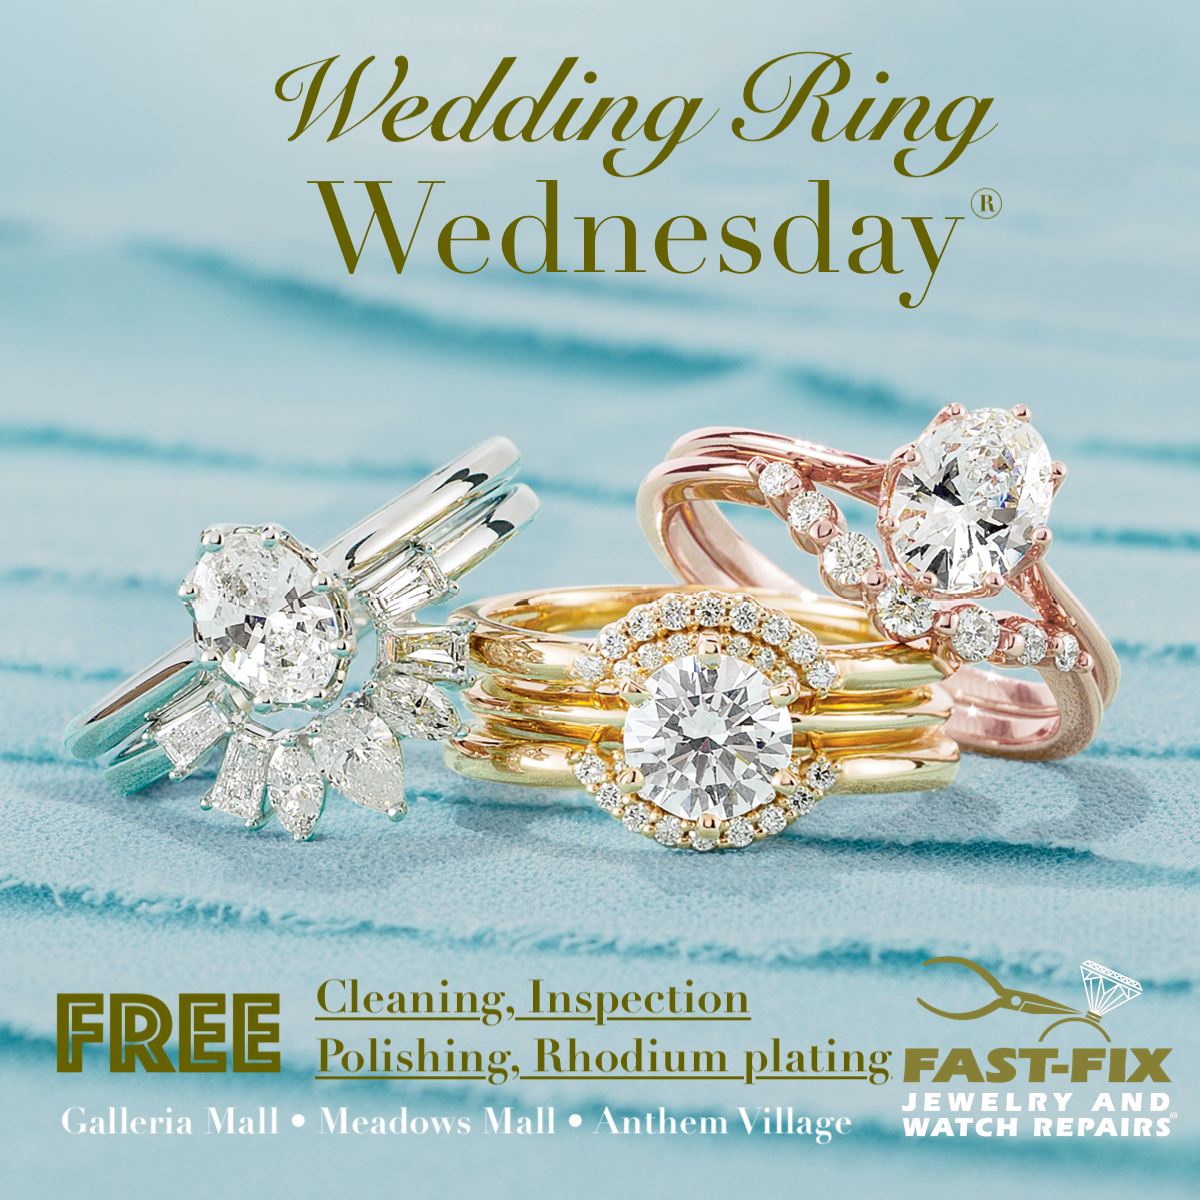 Free Cleaning, Inspection, Polishing and Rhodium plating( white gold only) on wedding rings every Wednesday.